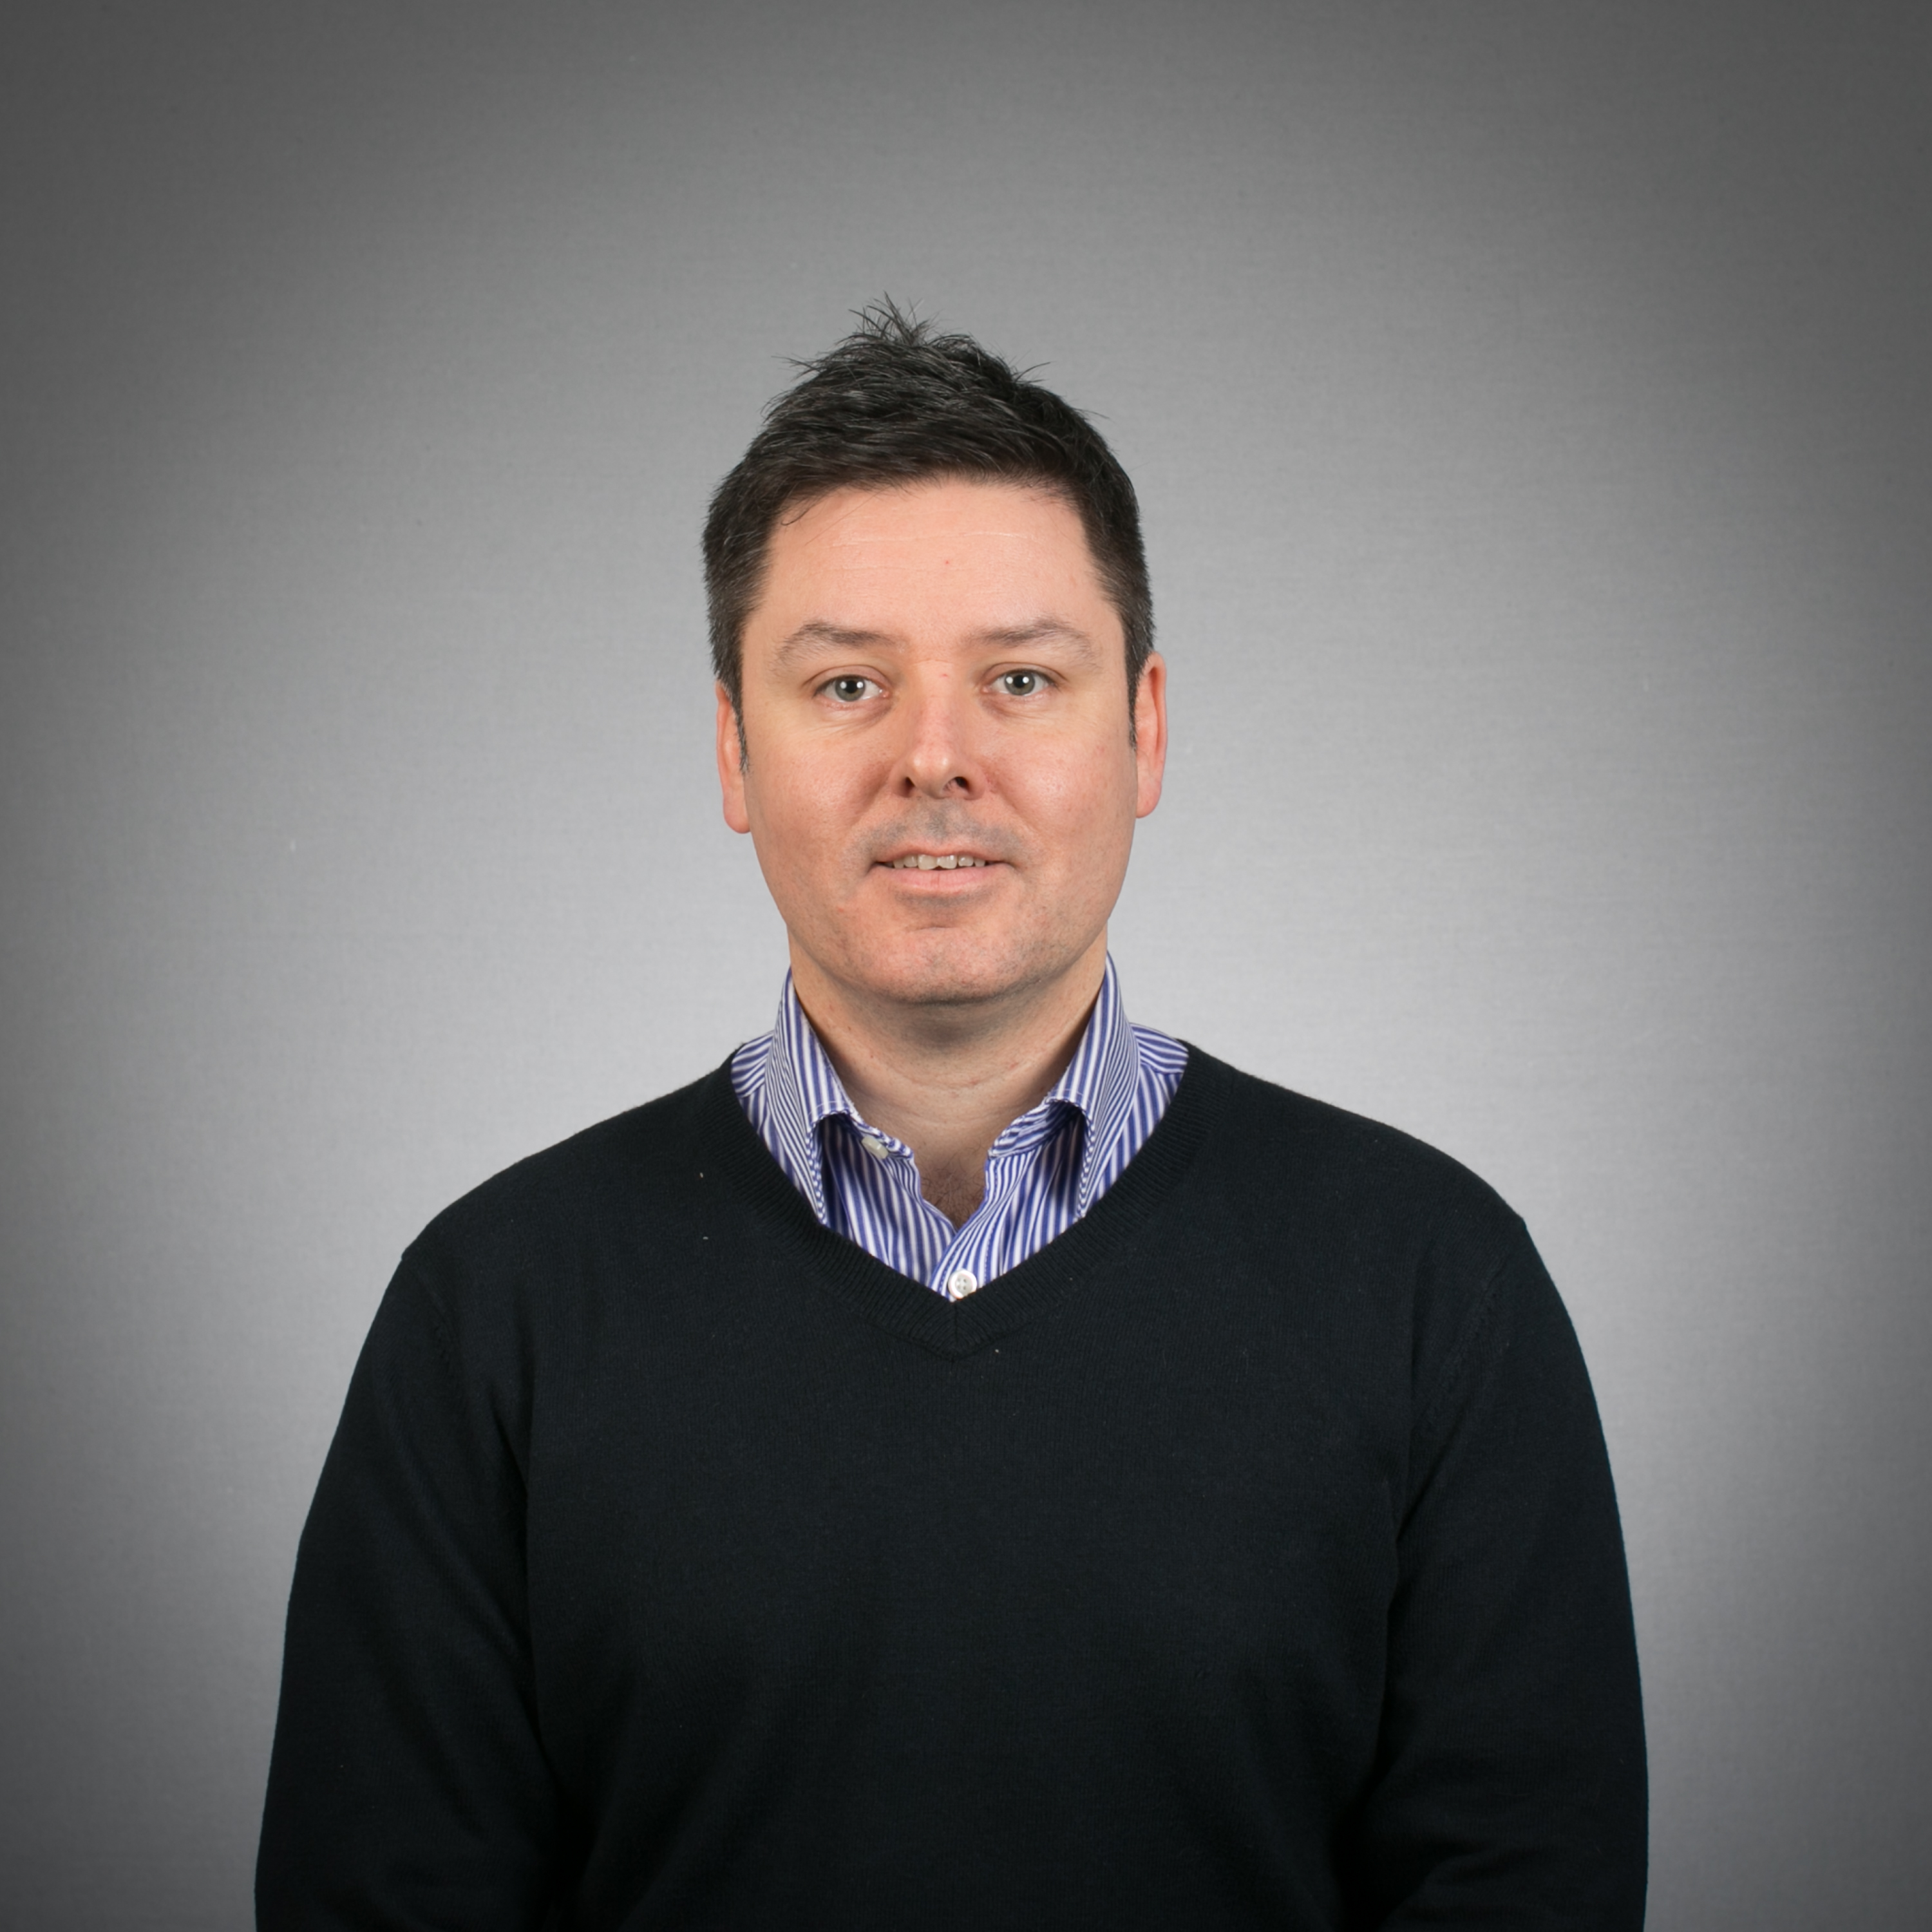 Almac Group Appoints Professor Tom Moody as VP of Technology Development and Commercialization